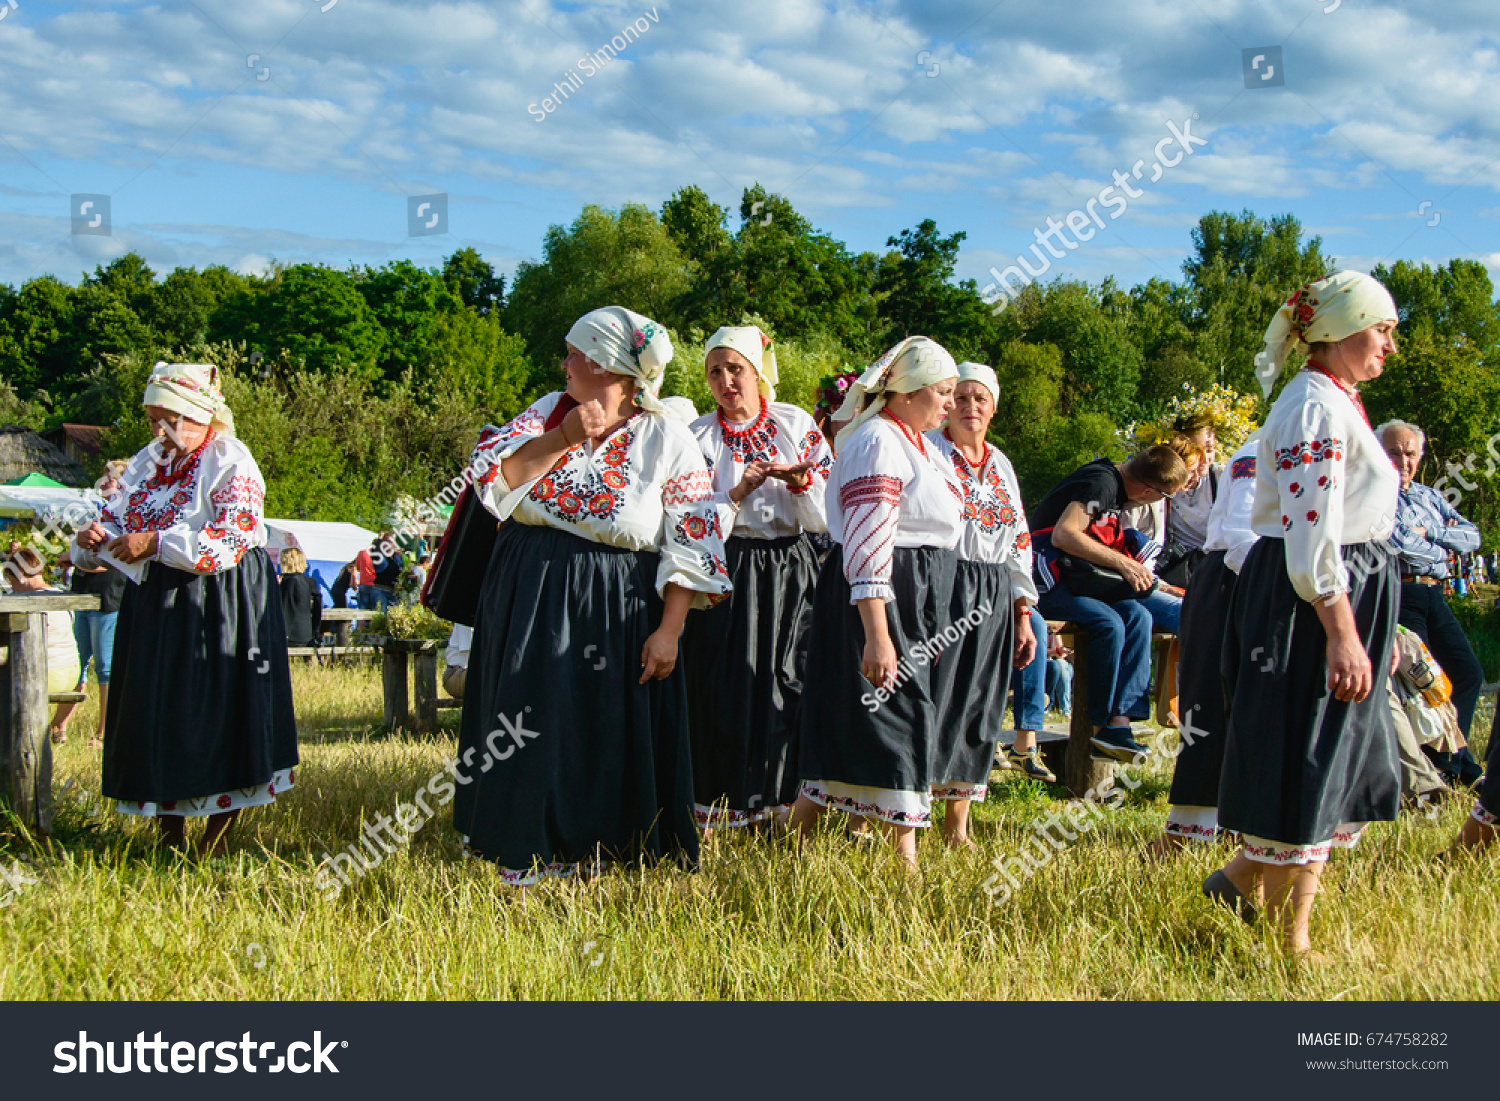 The holiday of Ivan Kupala 2017: ceremonies, traditions and games for children